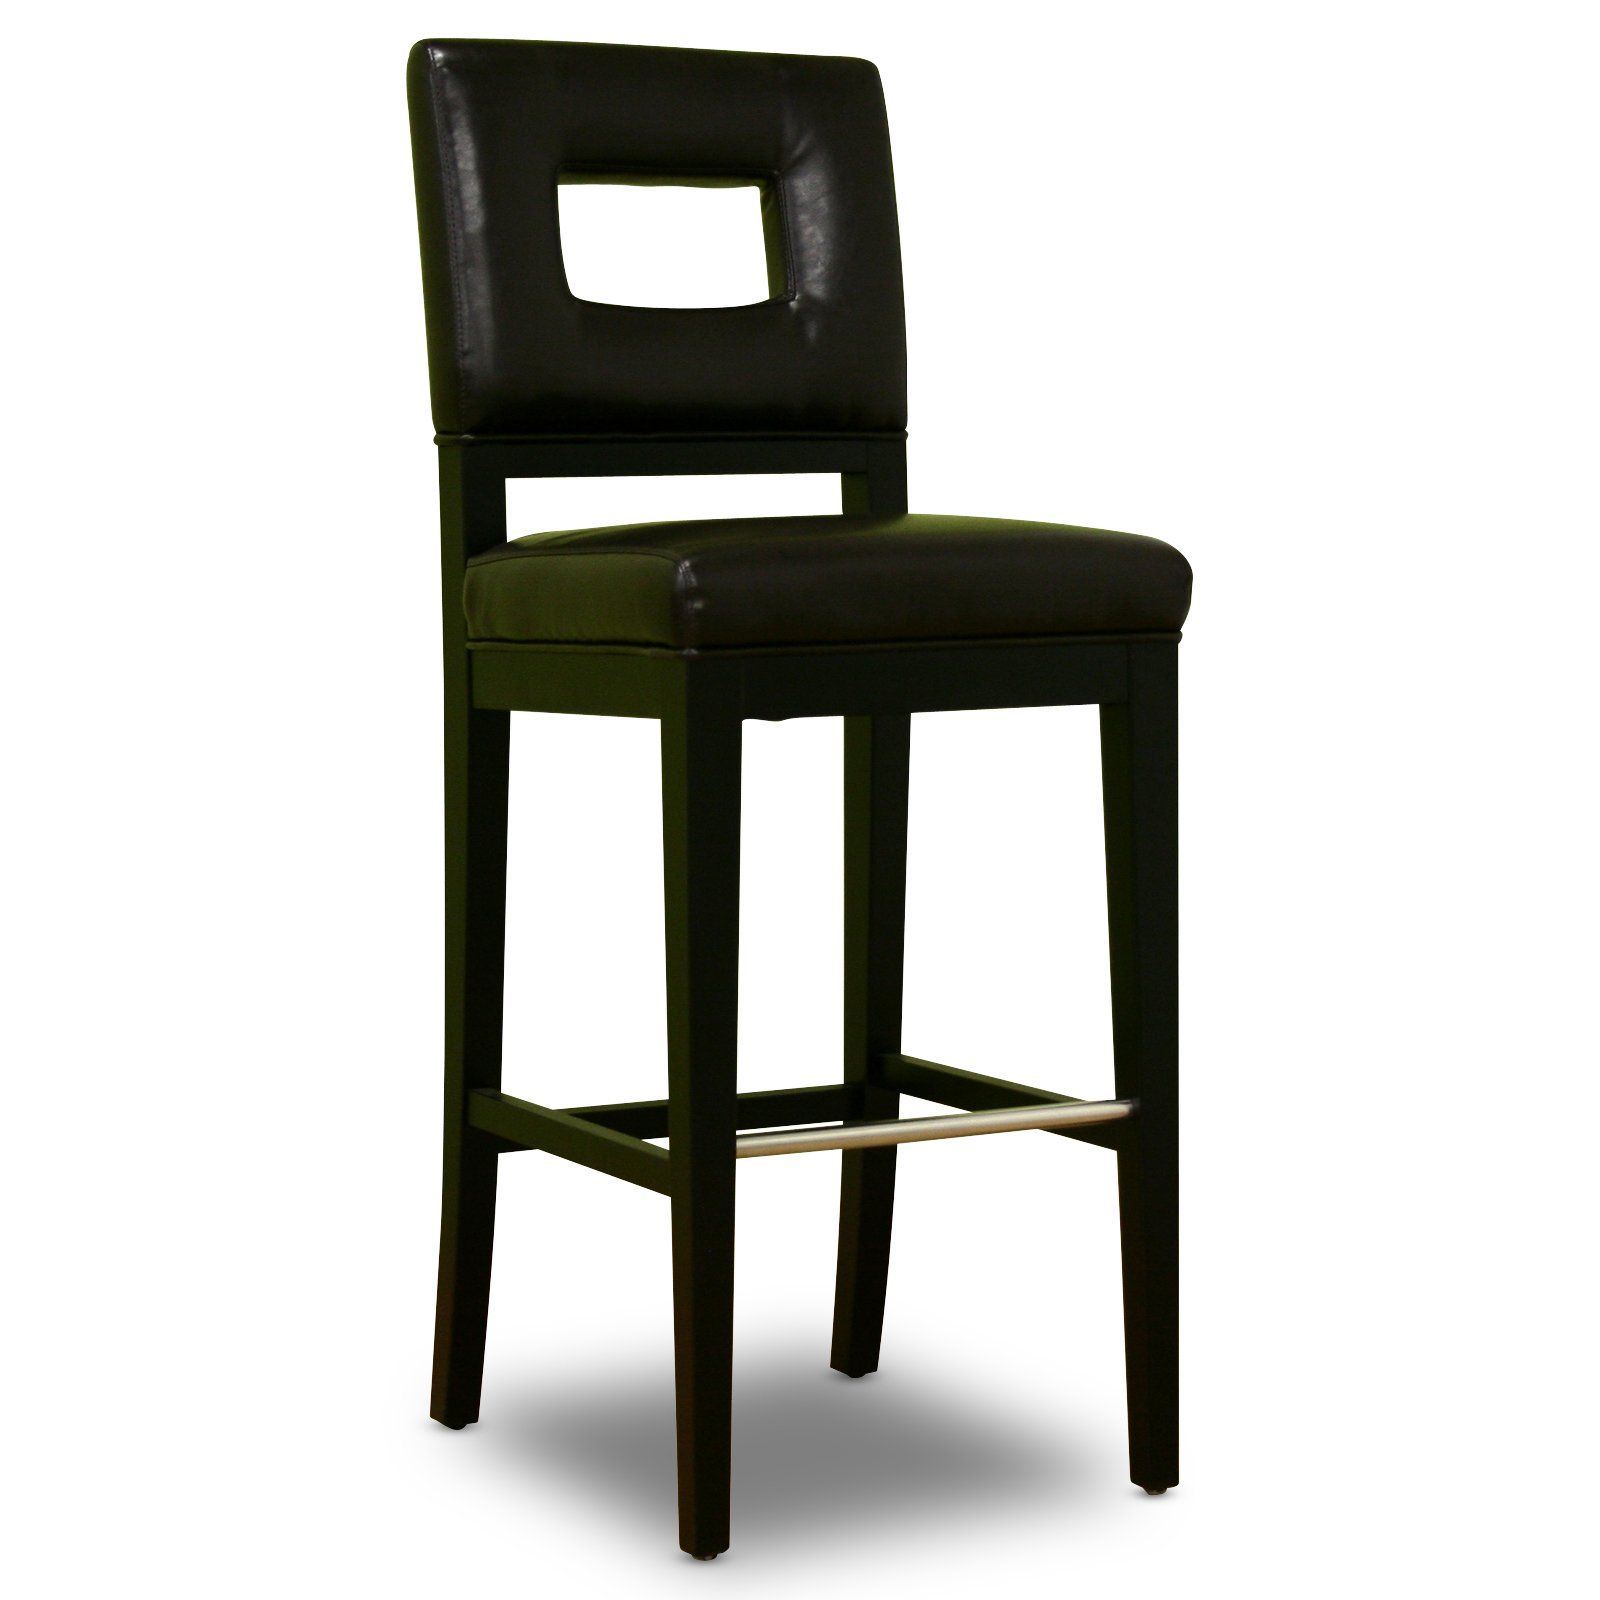 30 in. Faustino Dark Brown Bycast Leather Bar Stool at the Foundary